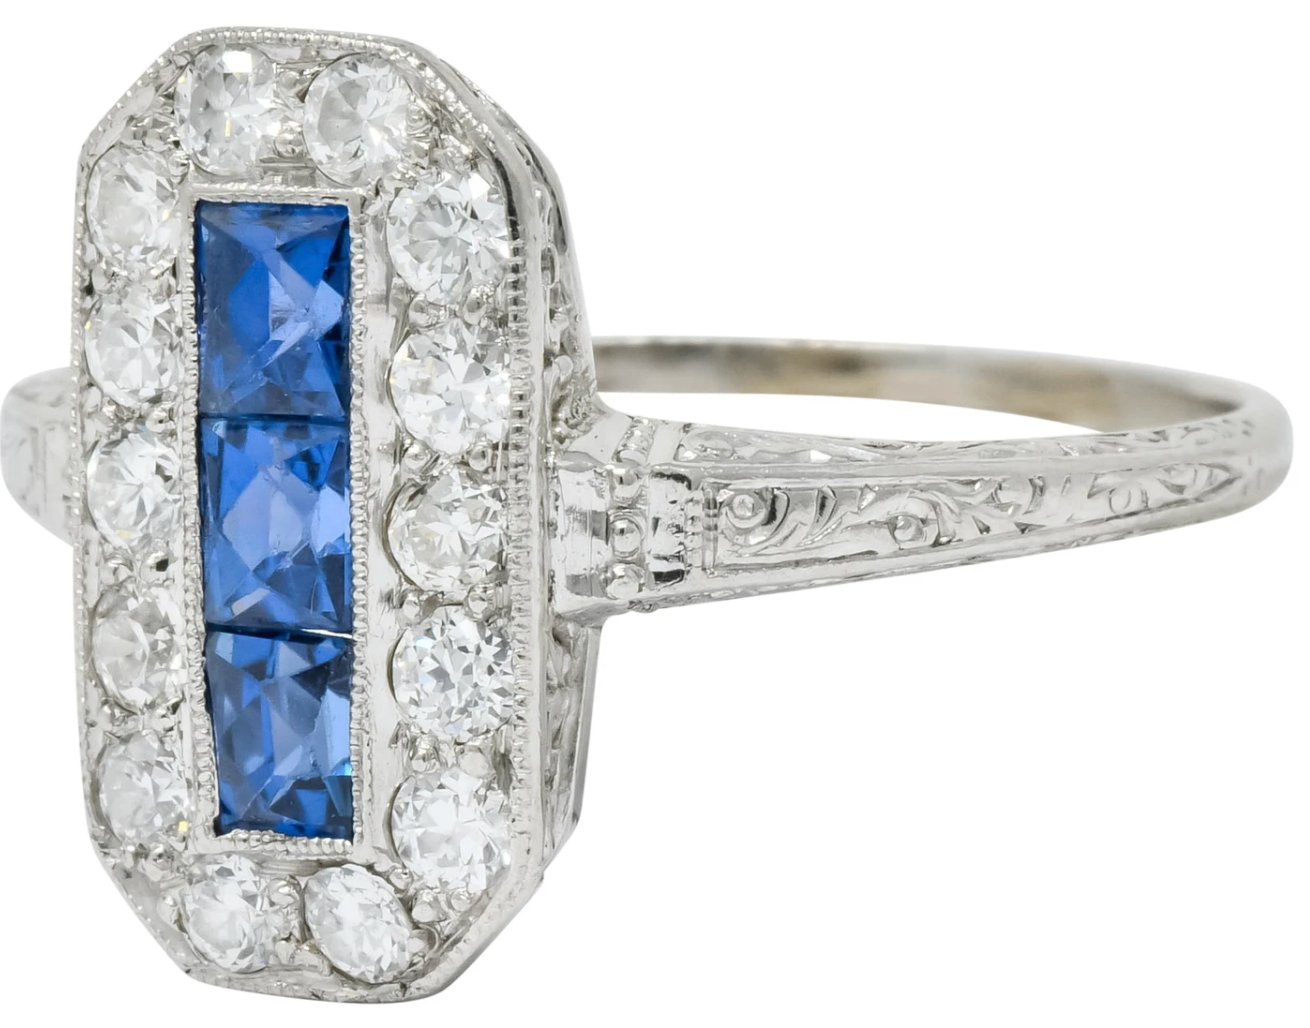 Channel set sapphire surrounded by diamond halo deeply engraved platinum dinner ring Fully signed Tiffany & Co.